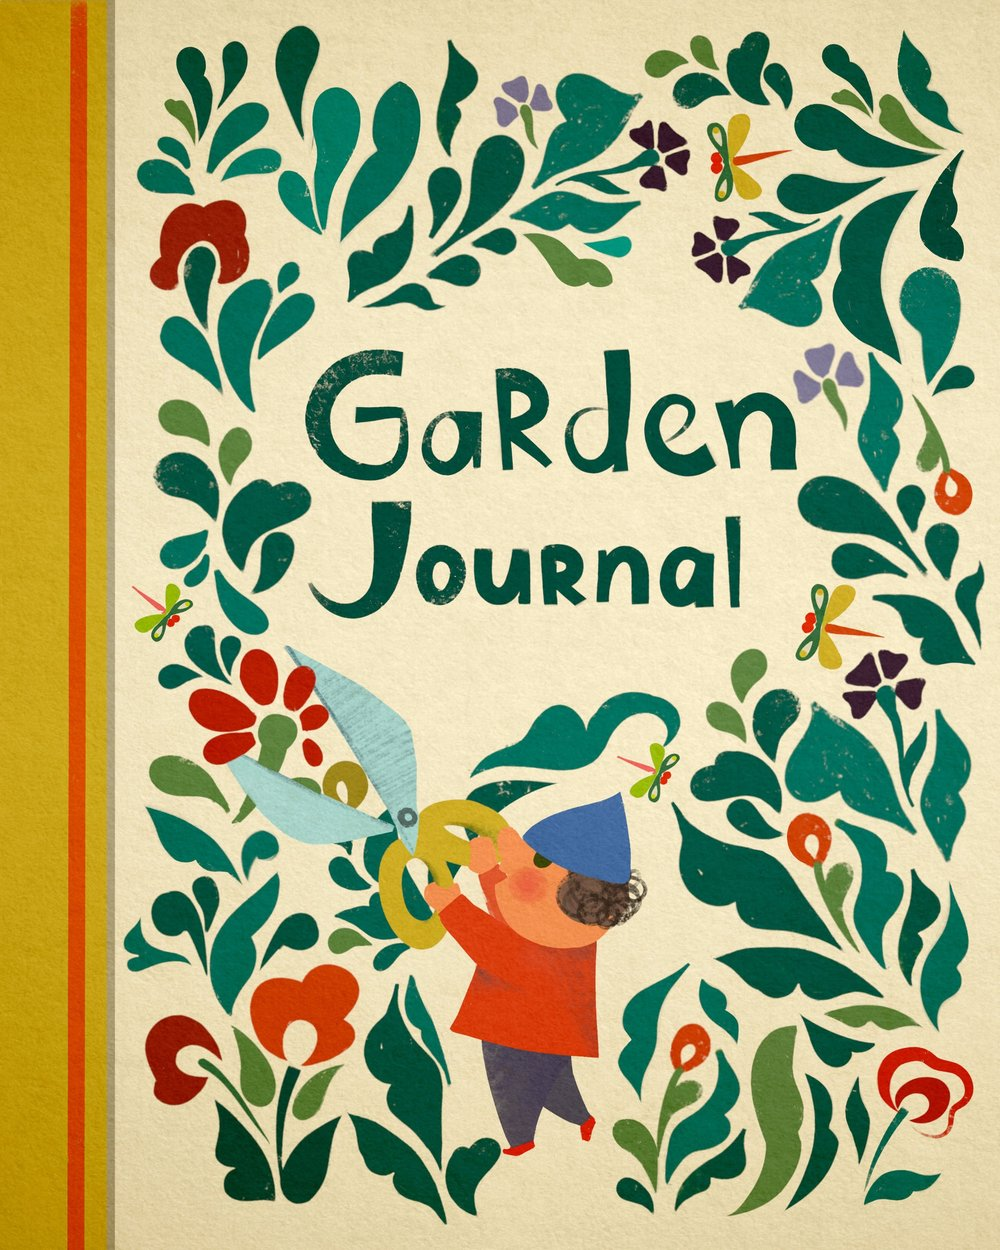 Garden Journal-Folio.jpg